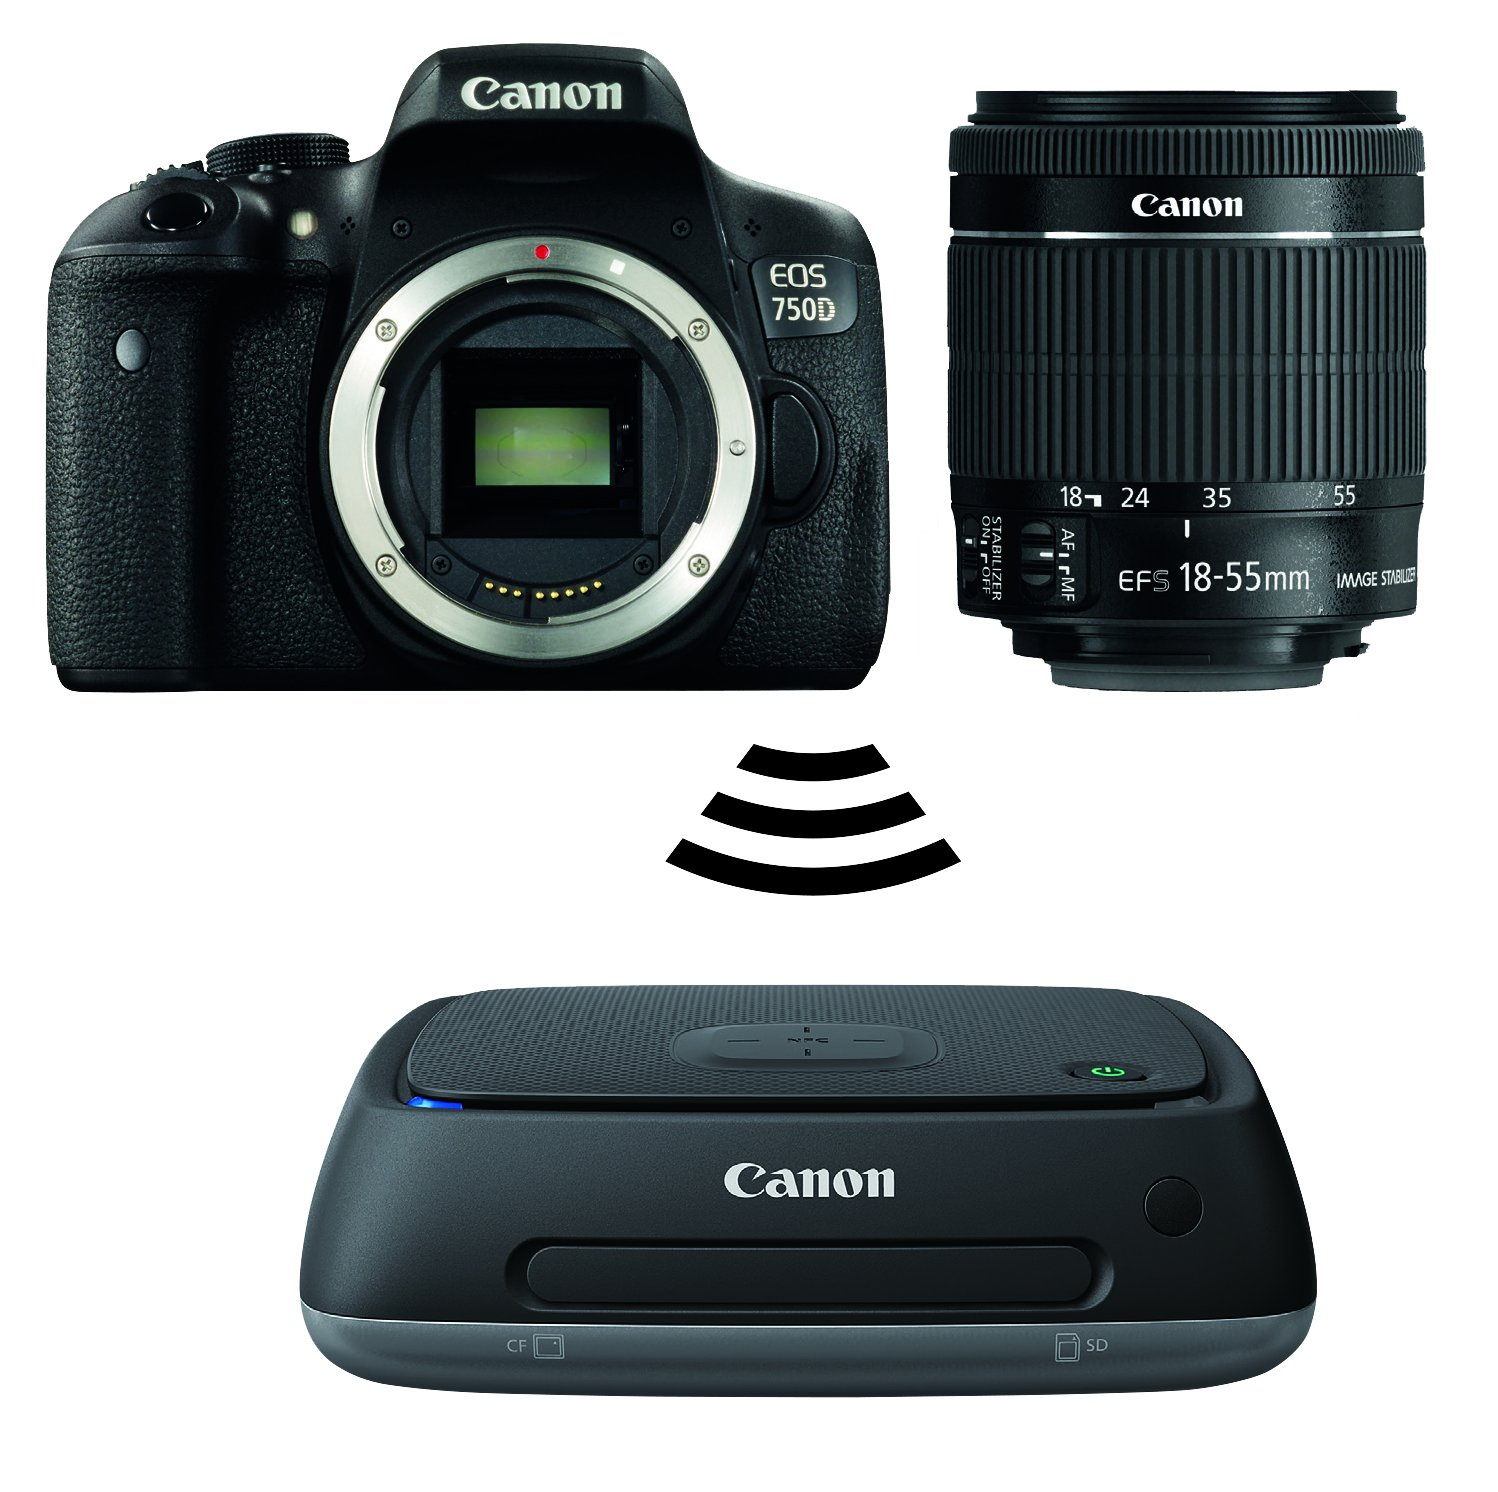 Canon EOS 750D Kit Fotocamera Reflex Digitale da 24 Megapixel con Obiettivo EF-S 18-55 mm IS STM, Connect Station CS100, Memorizzazione su Cloud, Nero/Antracite product image